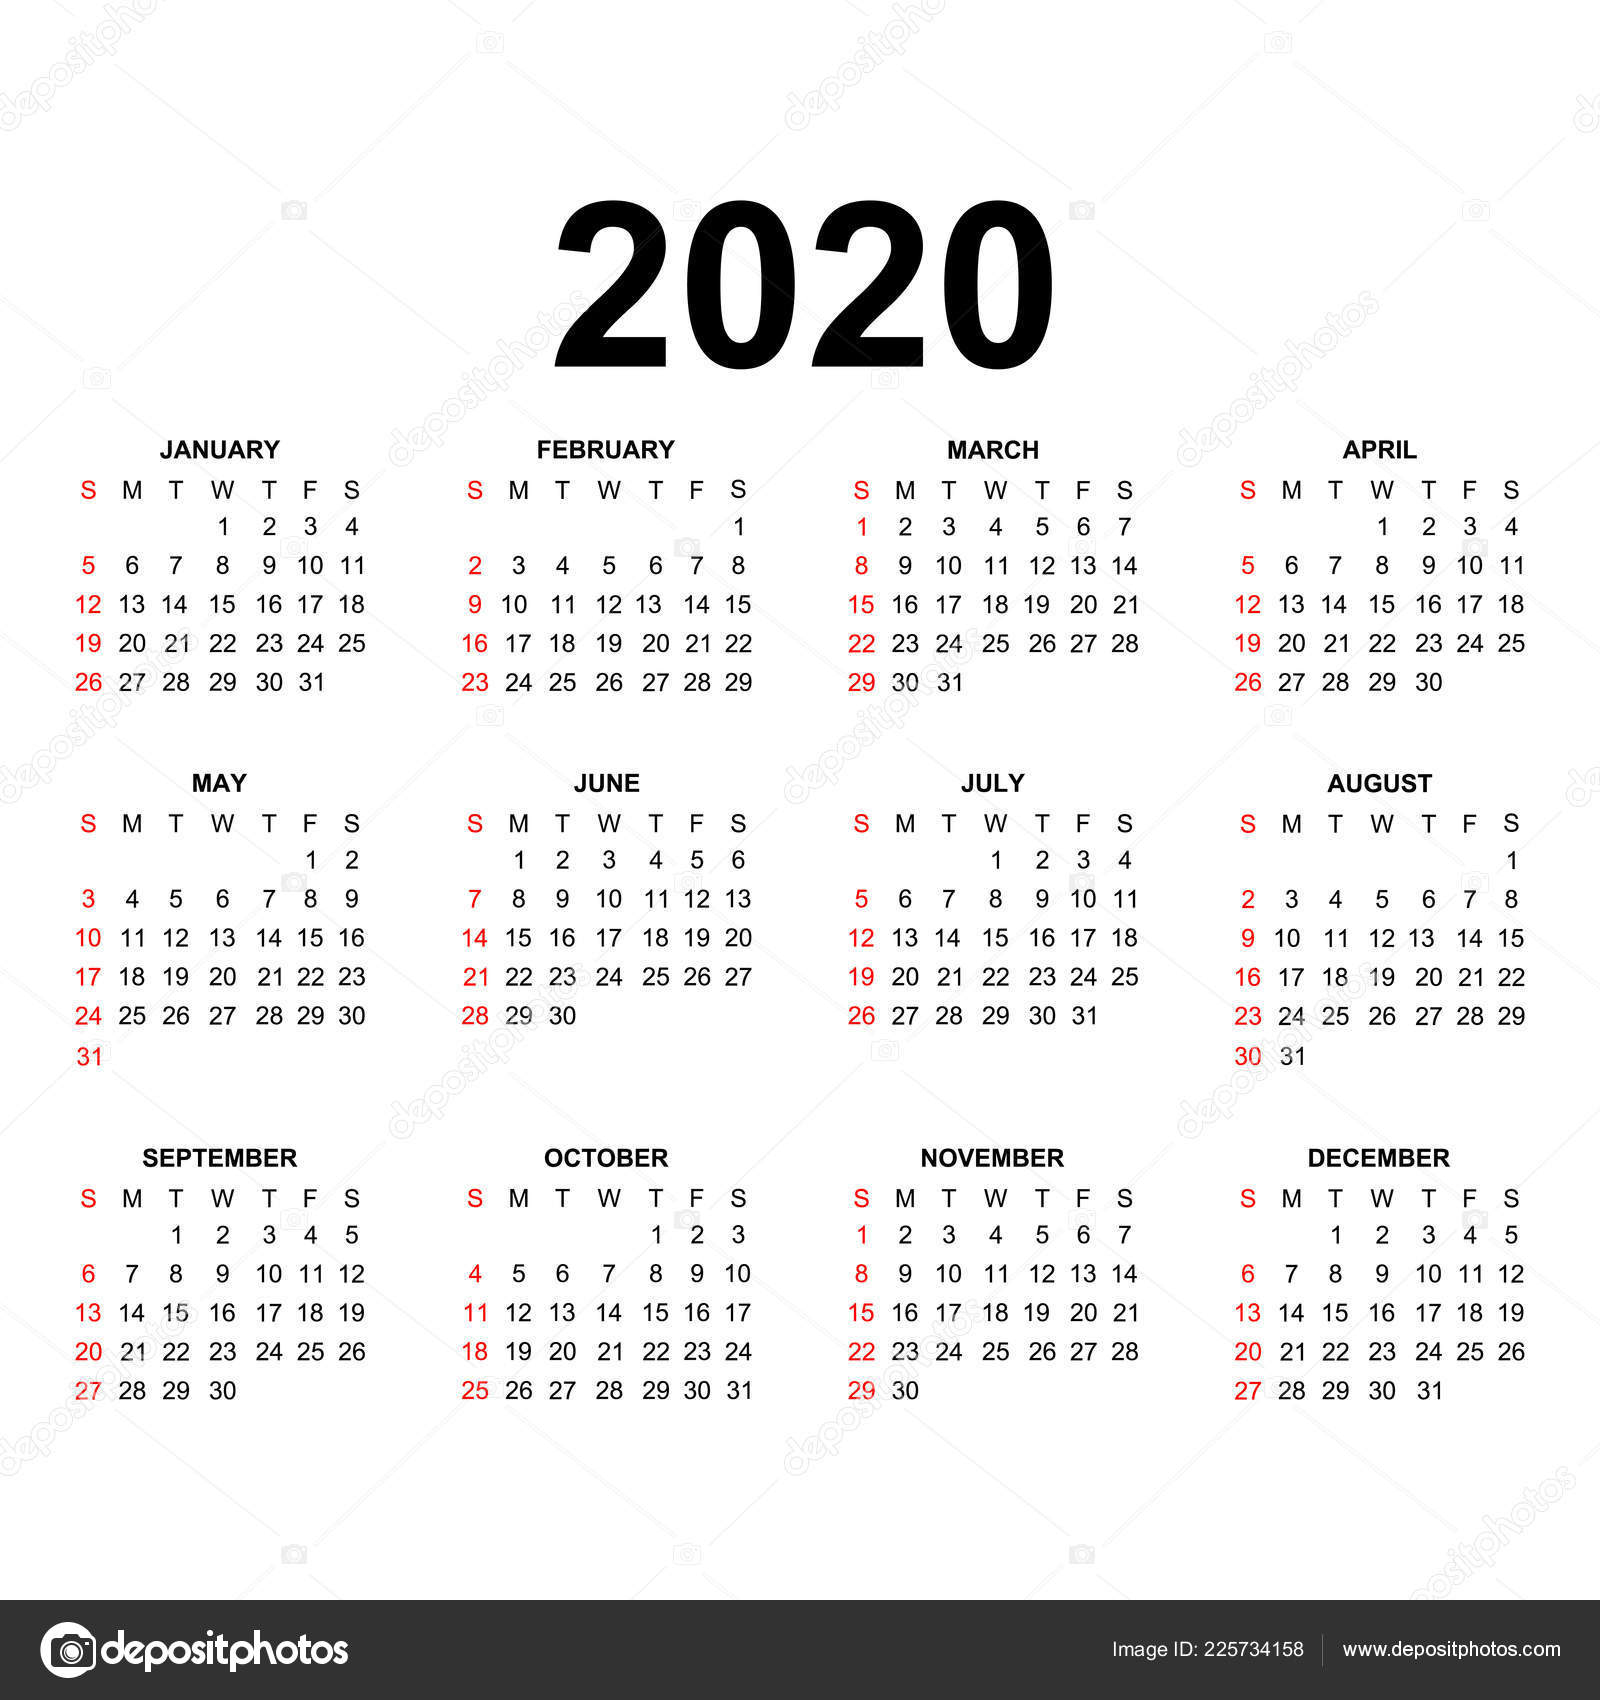 Calendario 2020 2020.Calendar 2020 Template Calendar Design Black White Colors